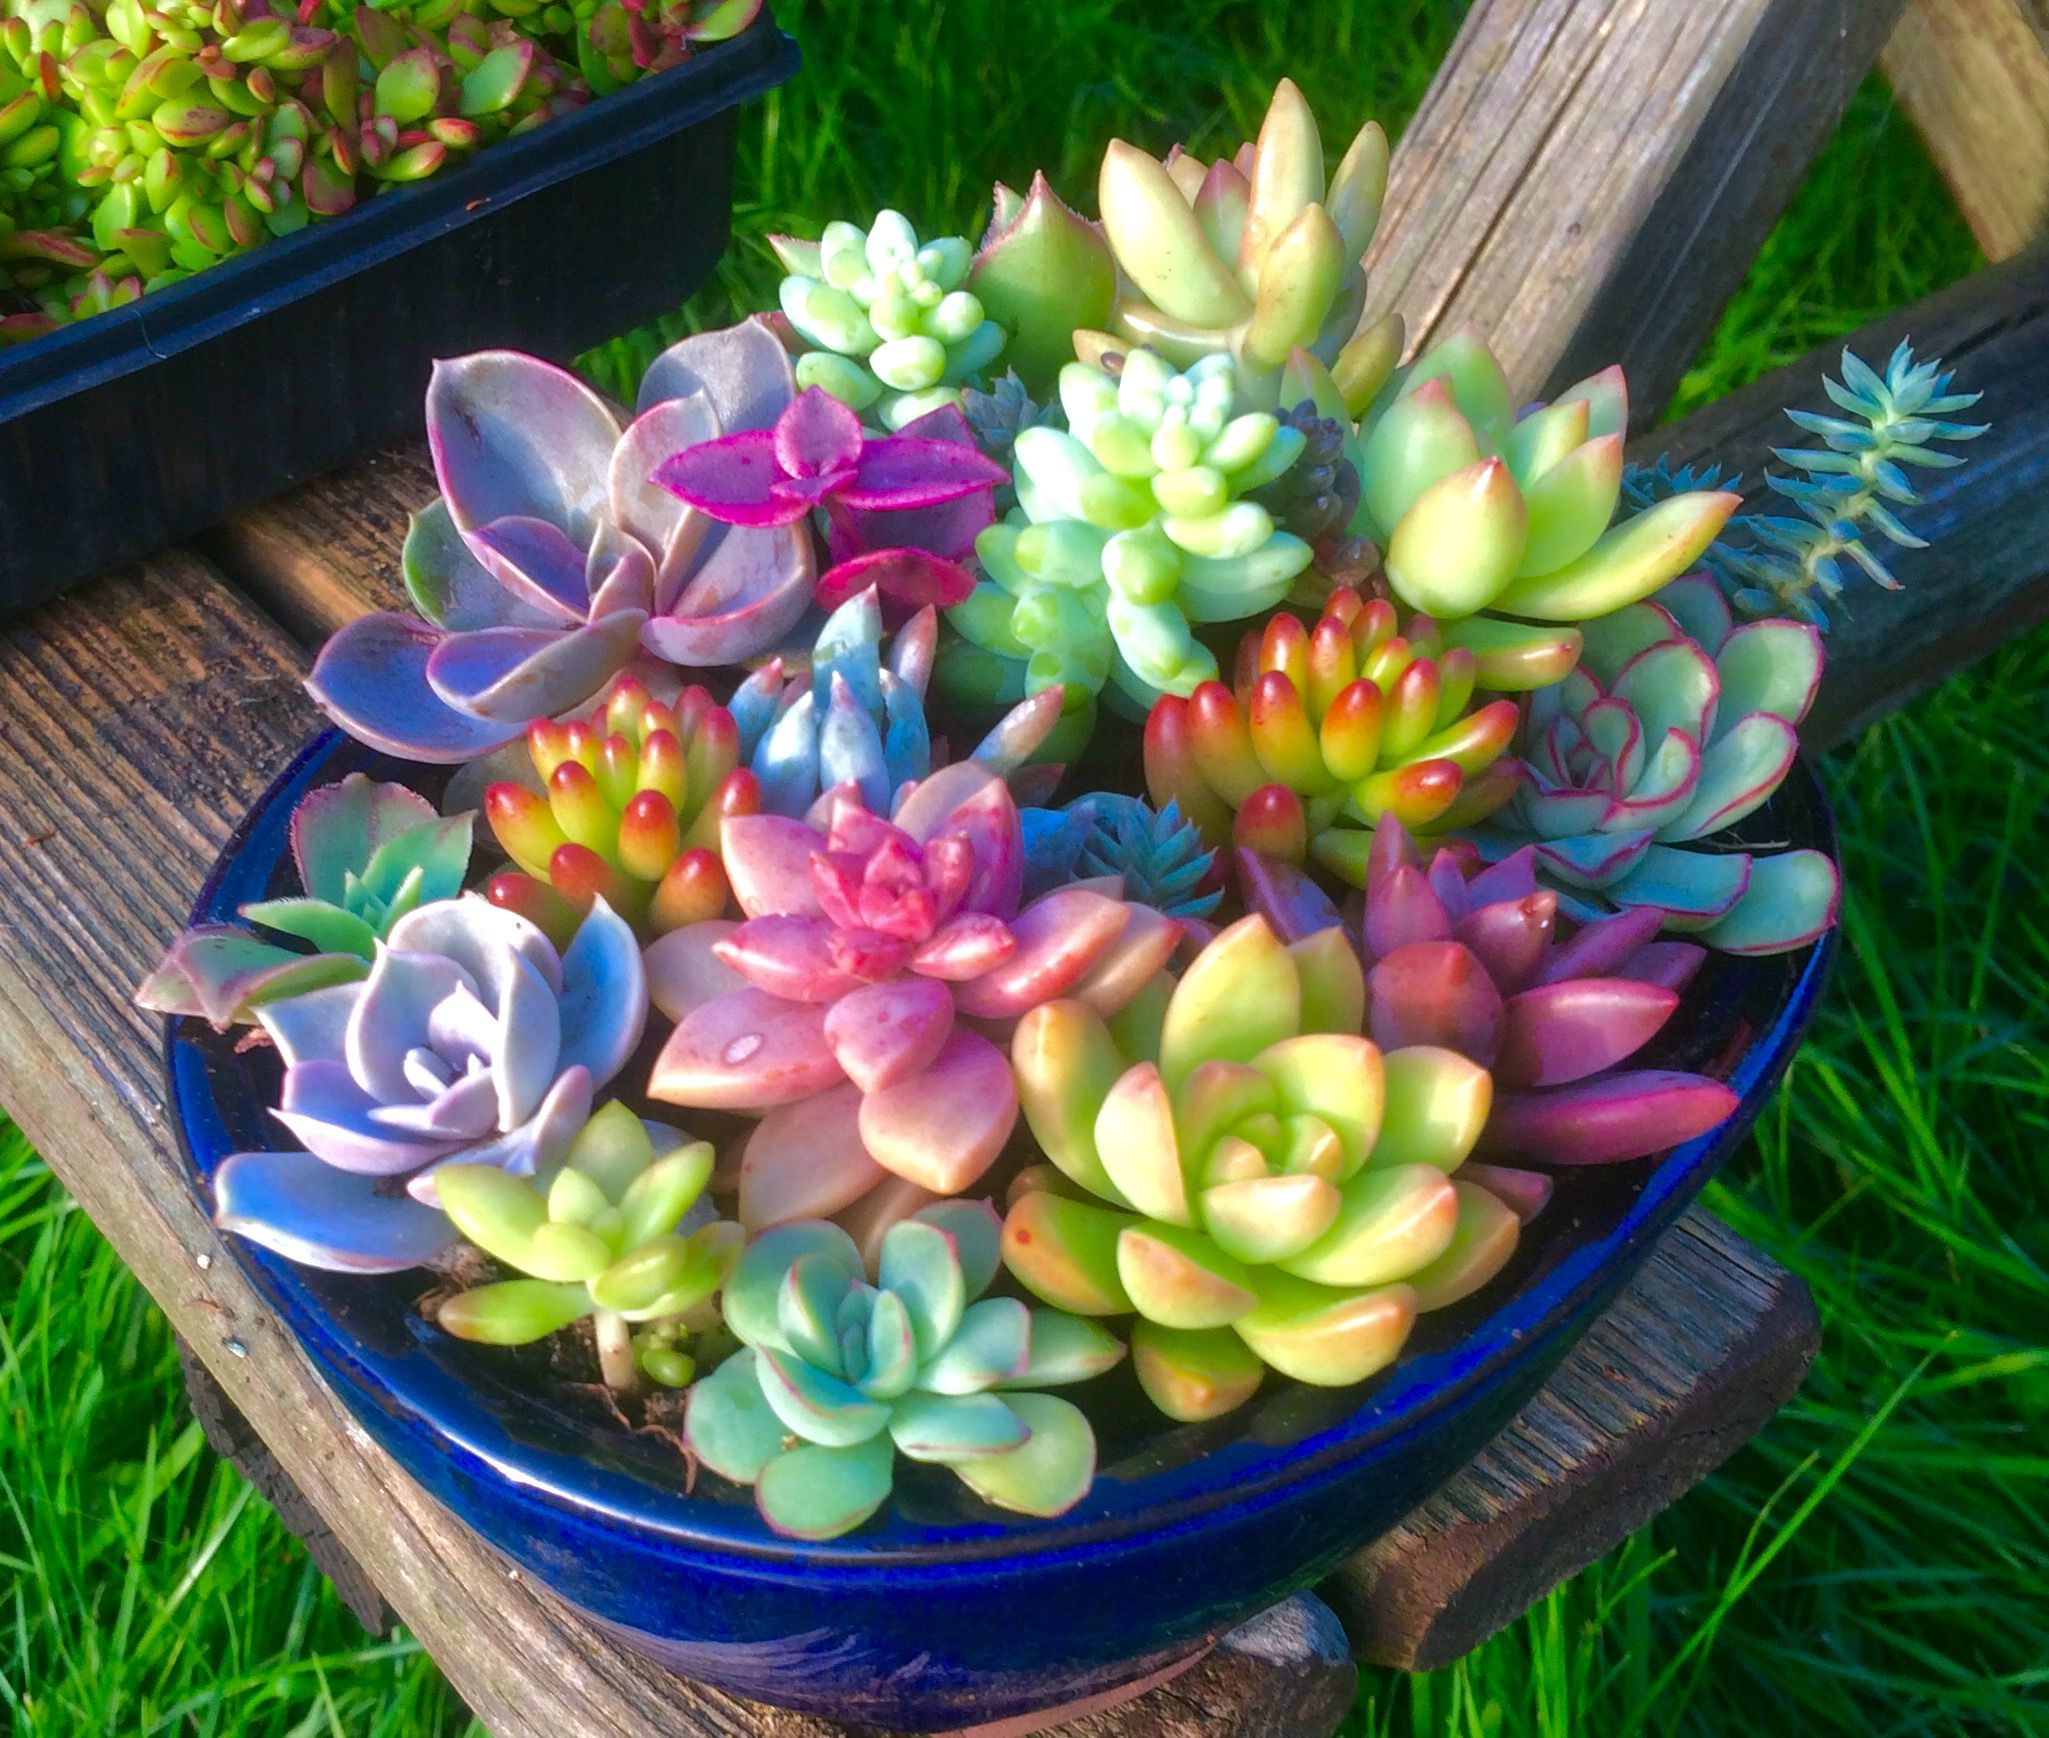 Succulent Arrangement With 20 Species Seen From Side This Includes